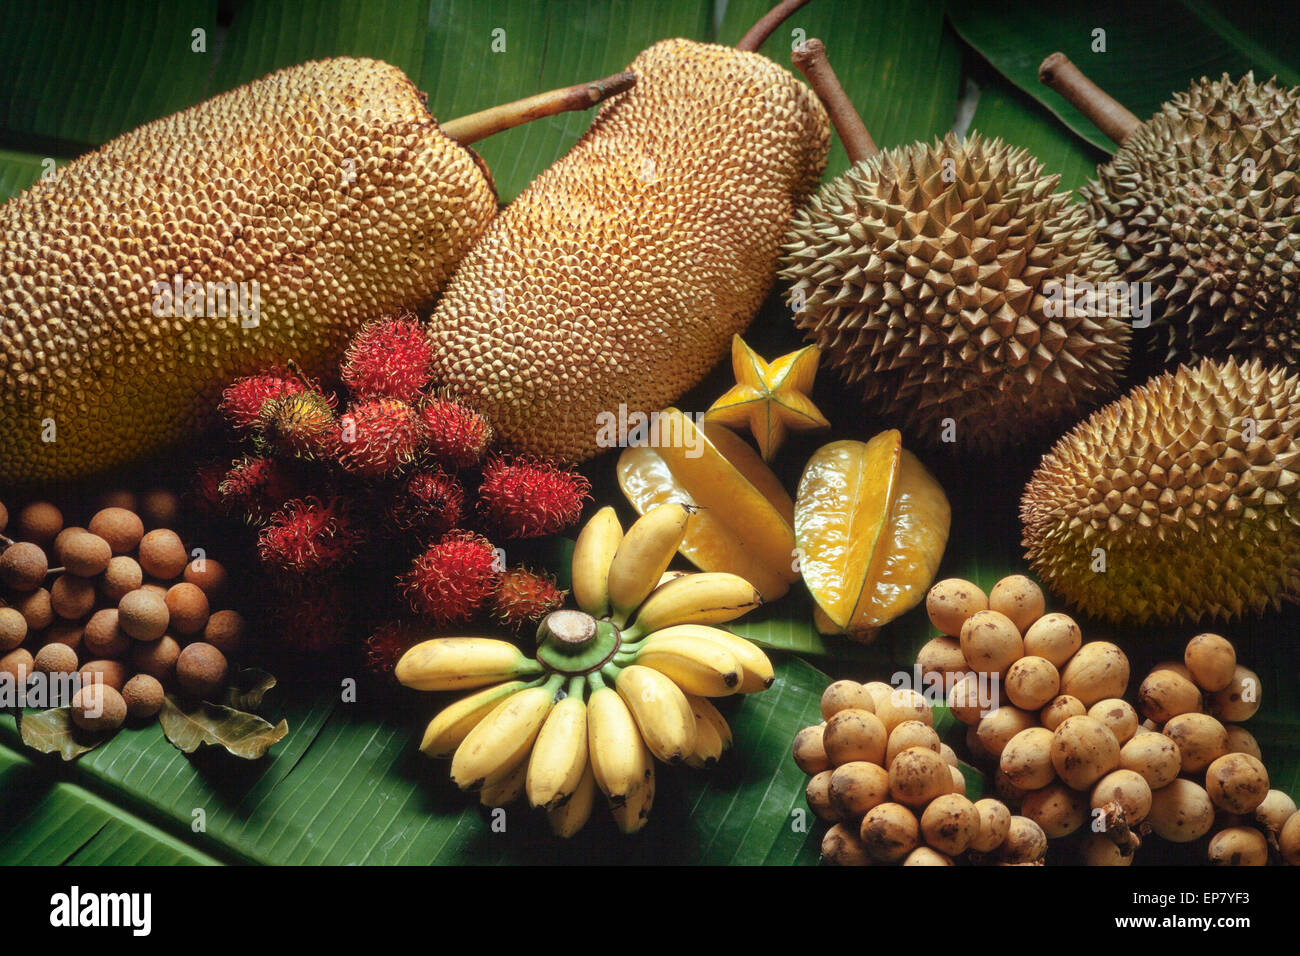 Tropical fruits variety, Malaysia; Durian, banana, star fruit, rambutan, jackfruit, longan, mata kuching Stock Photo